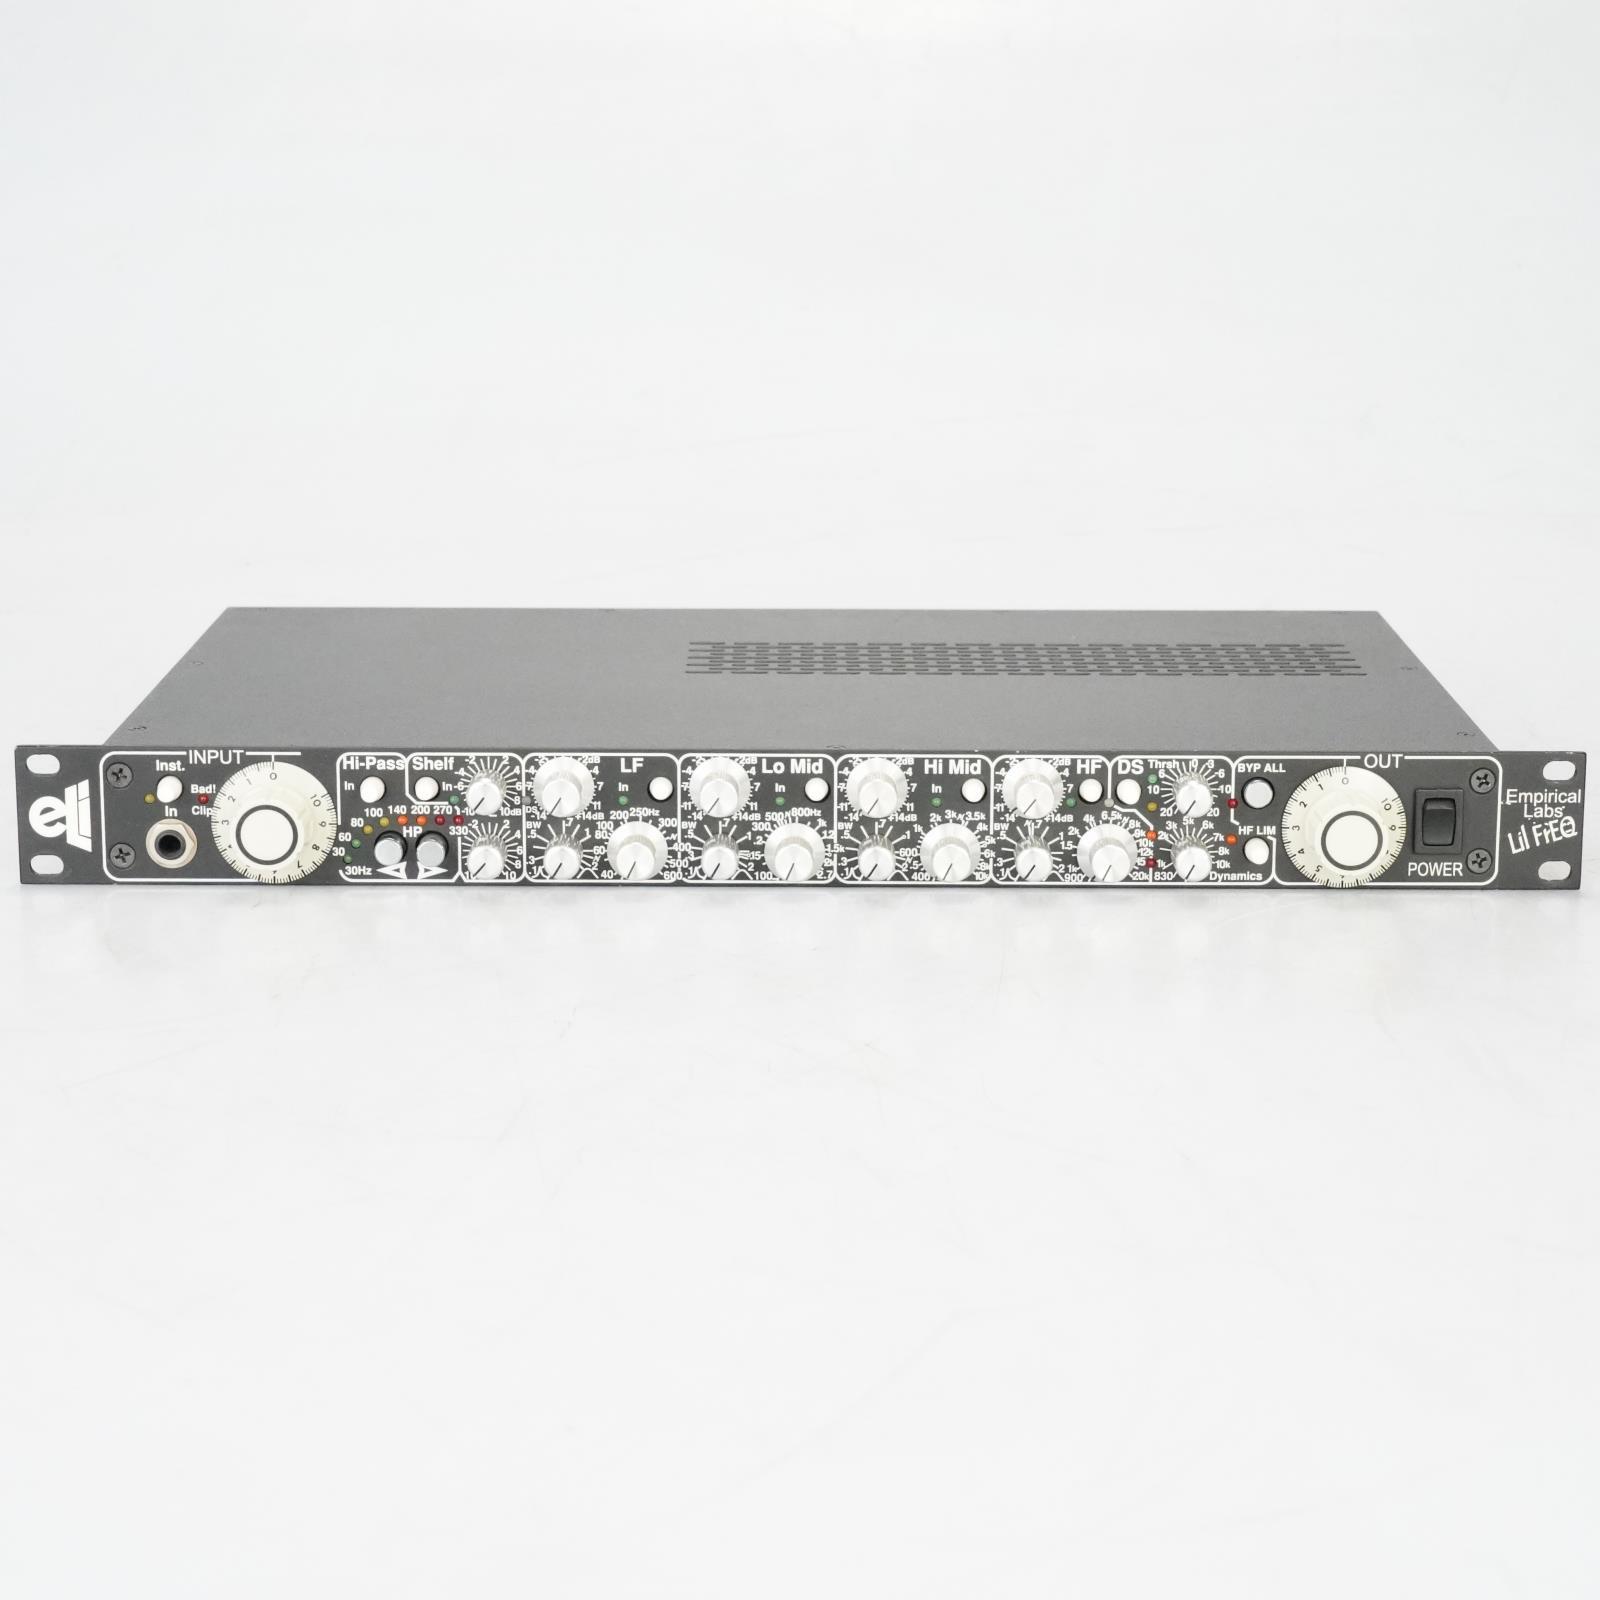 Empirical Labs Lil FrEQ Equalizer Signal Processor Owned by Ed Cherney #38999